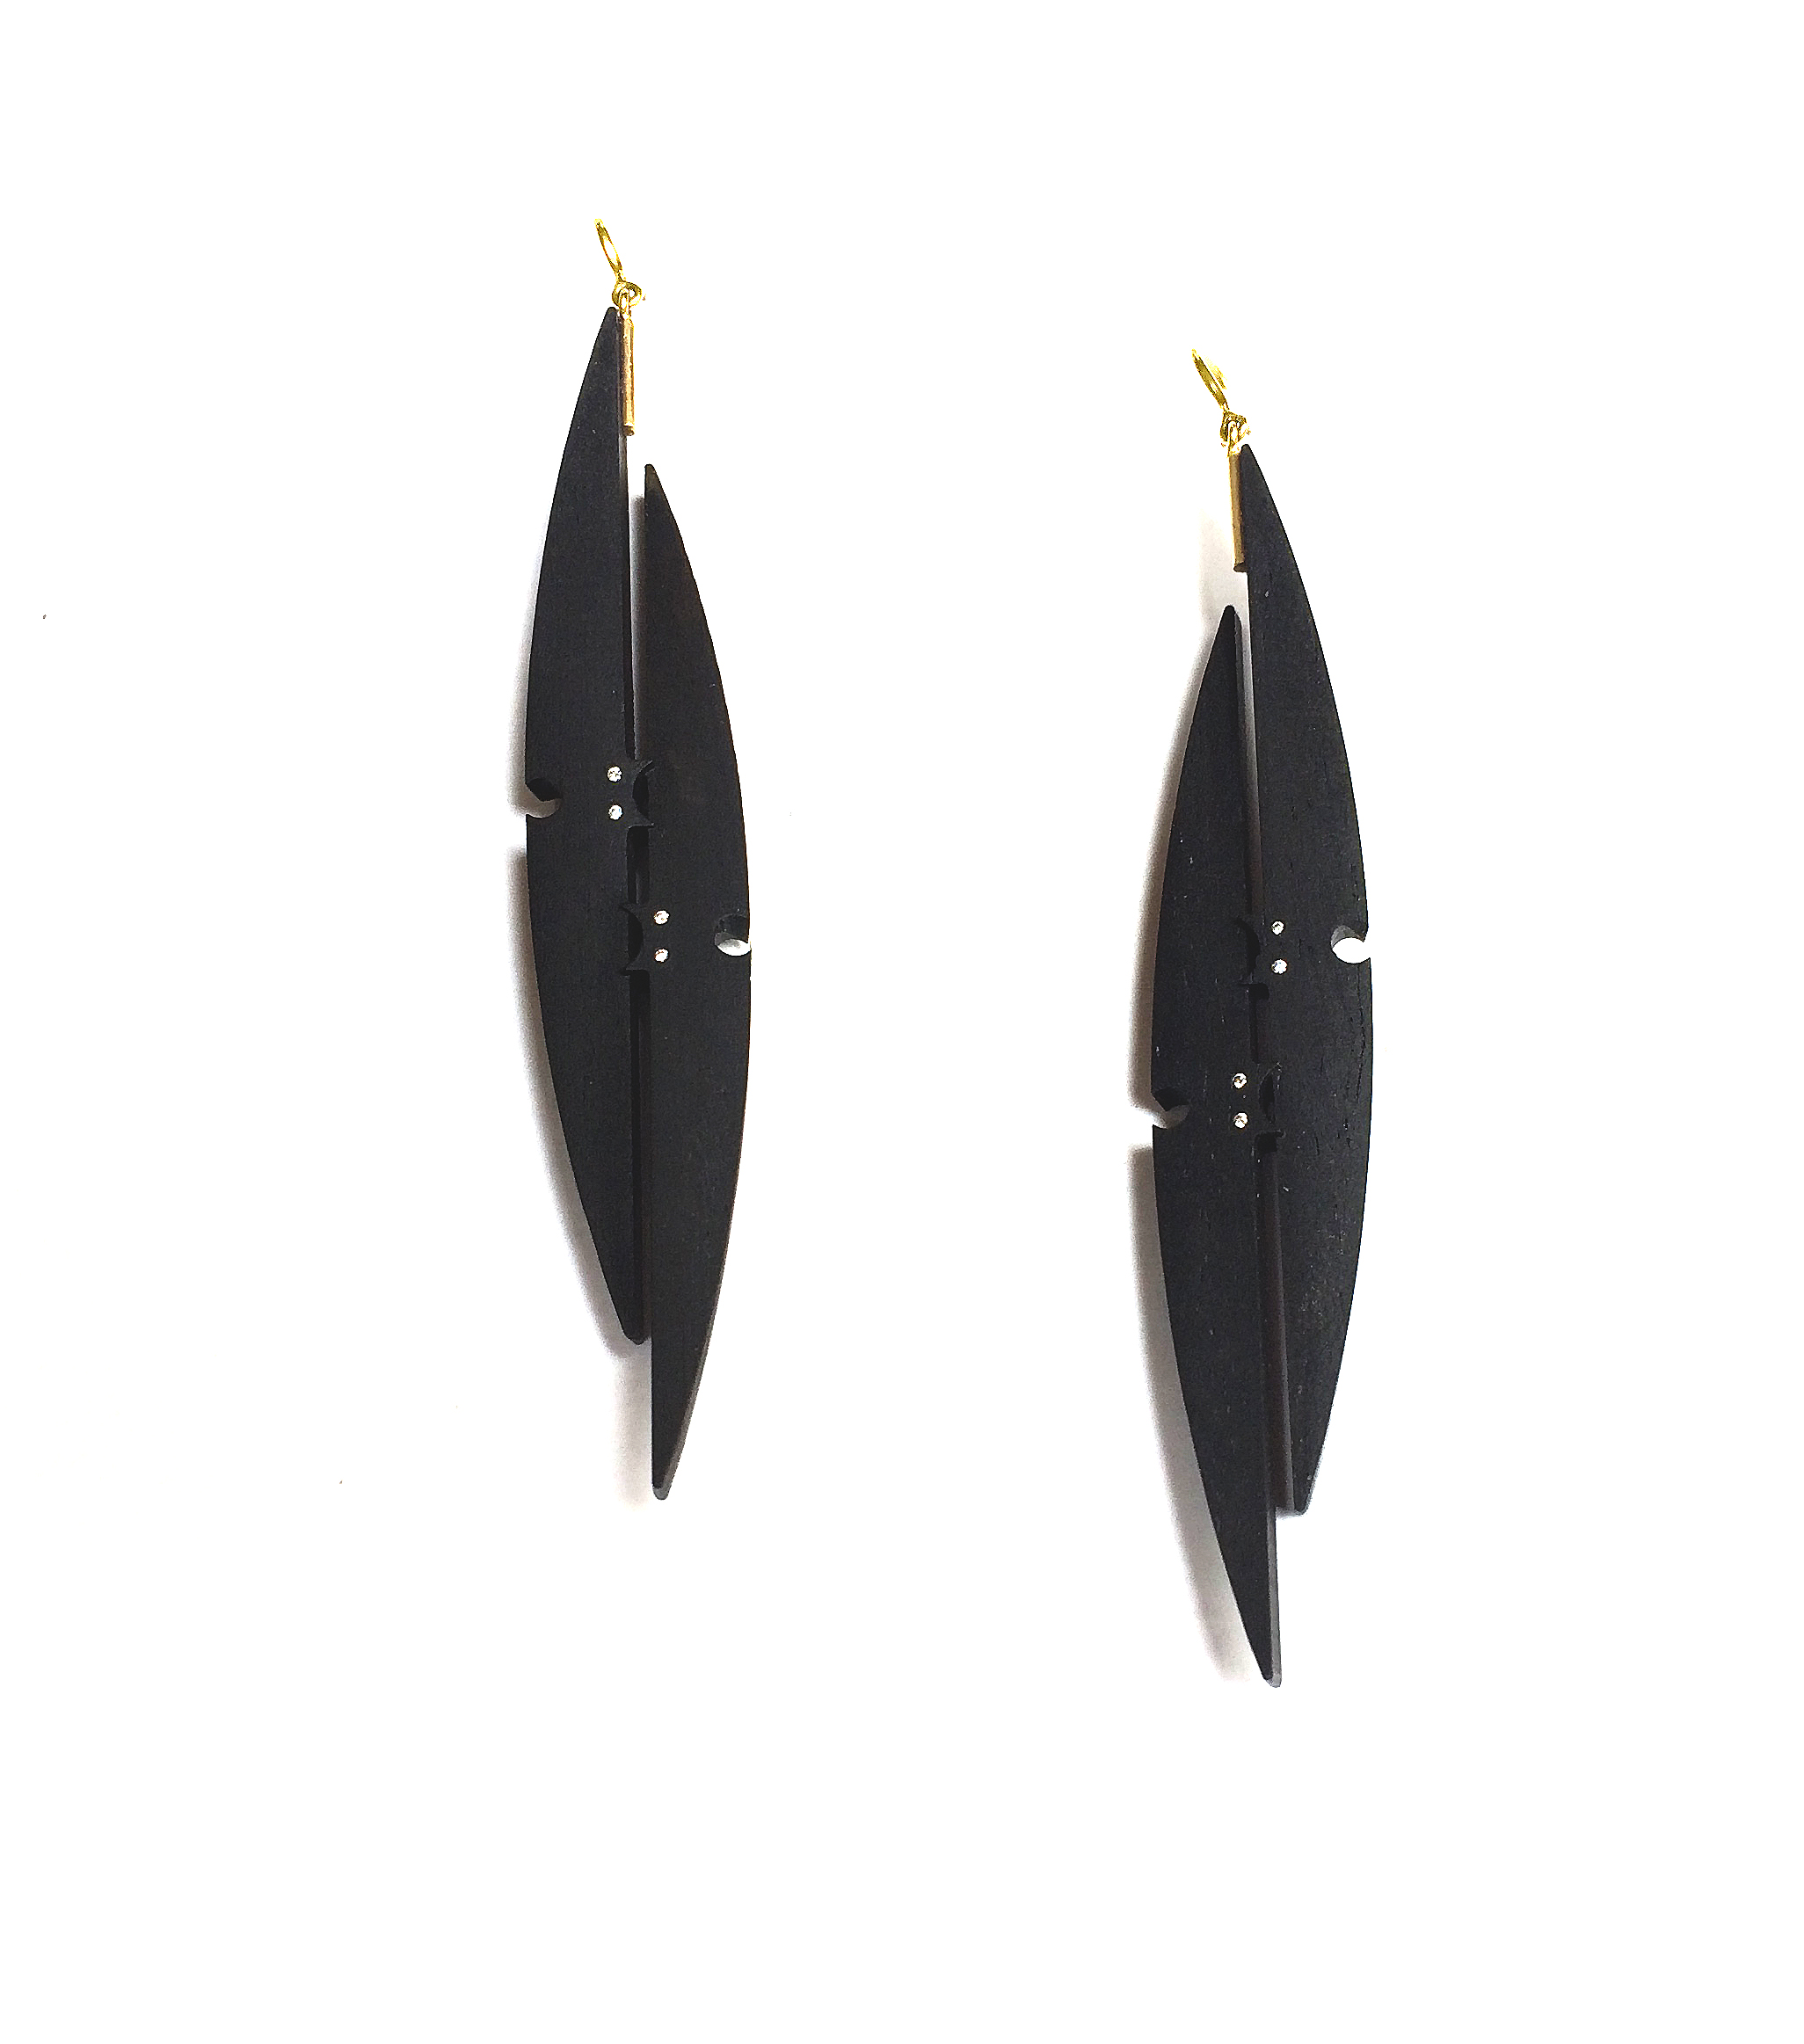 Earrings in Ebony, 18 yellow gold, and diamonds